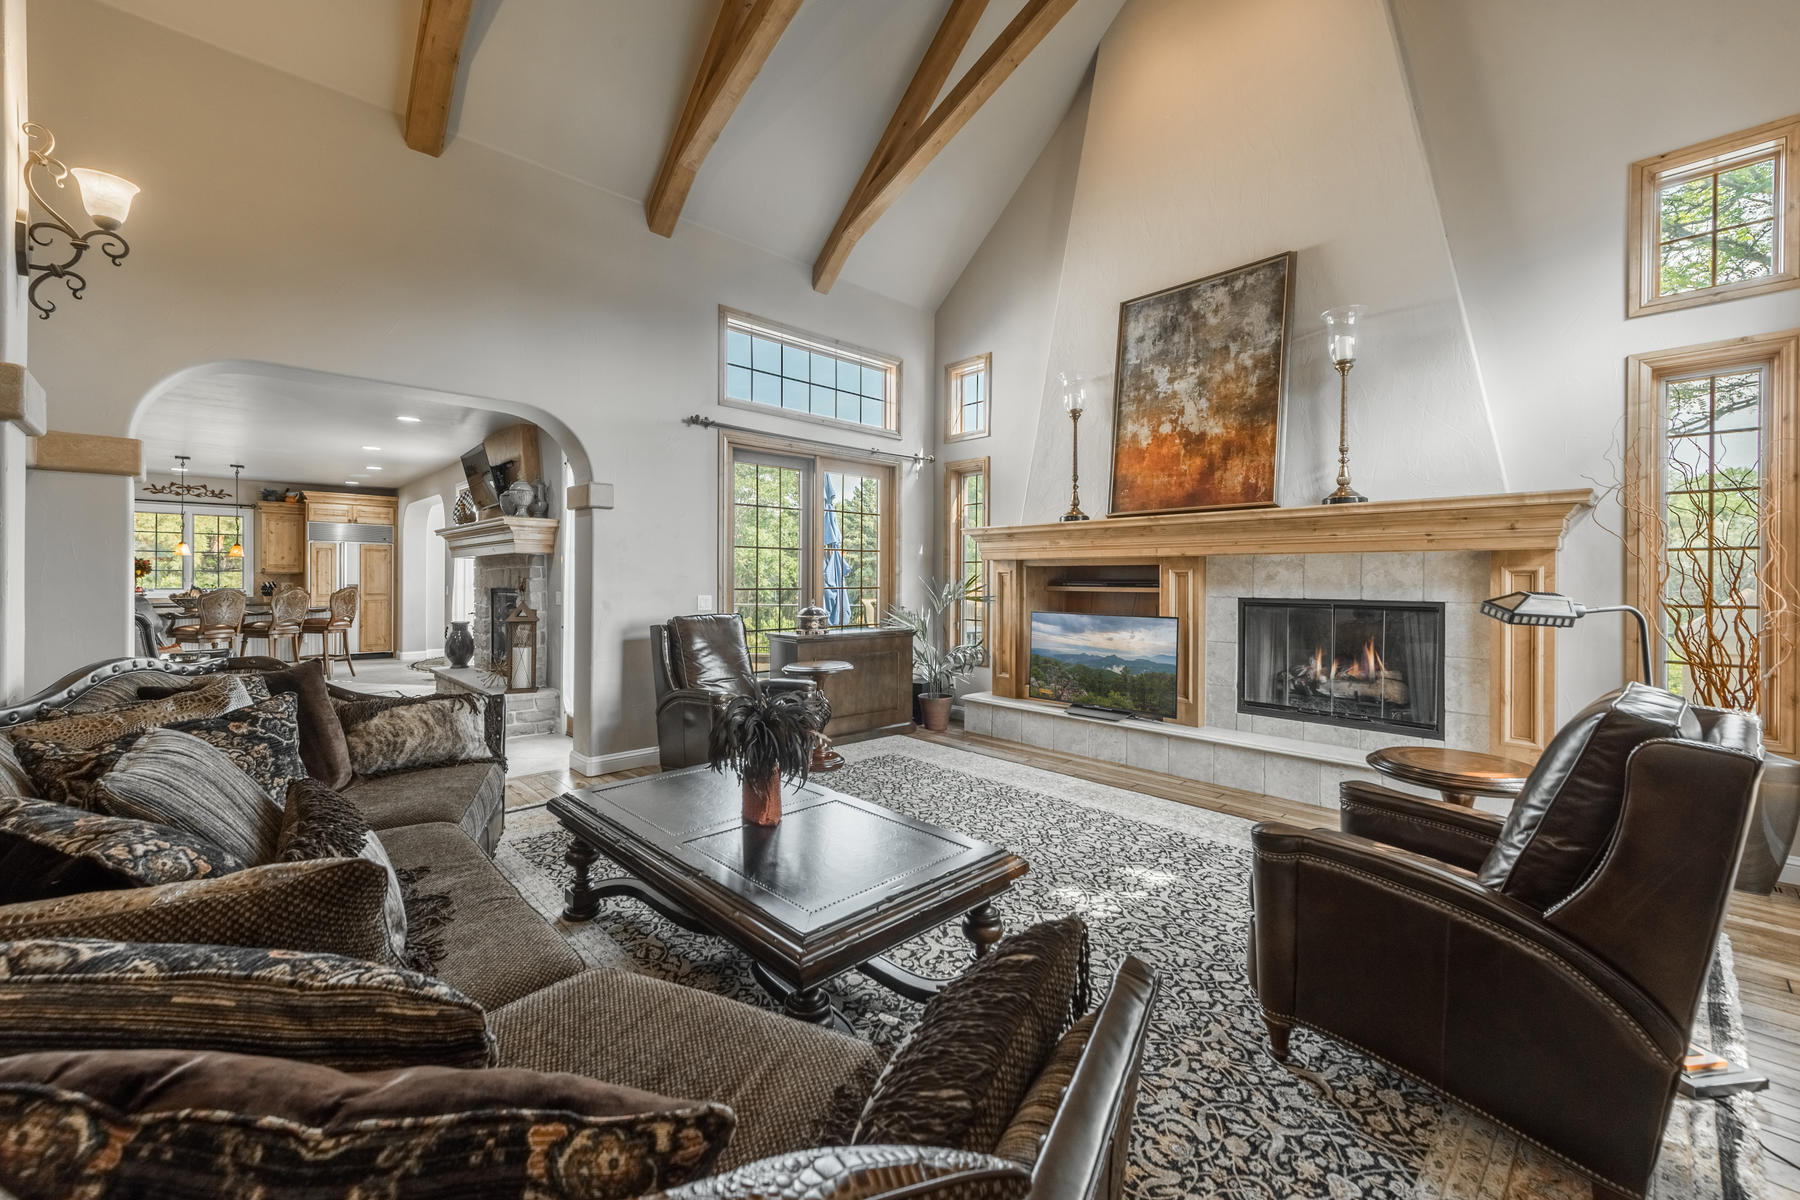 Single Family Homes for Active at 5437 South Oneida Way Greenwood Village, Colorado 80111 United States